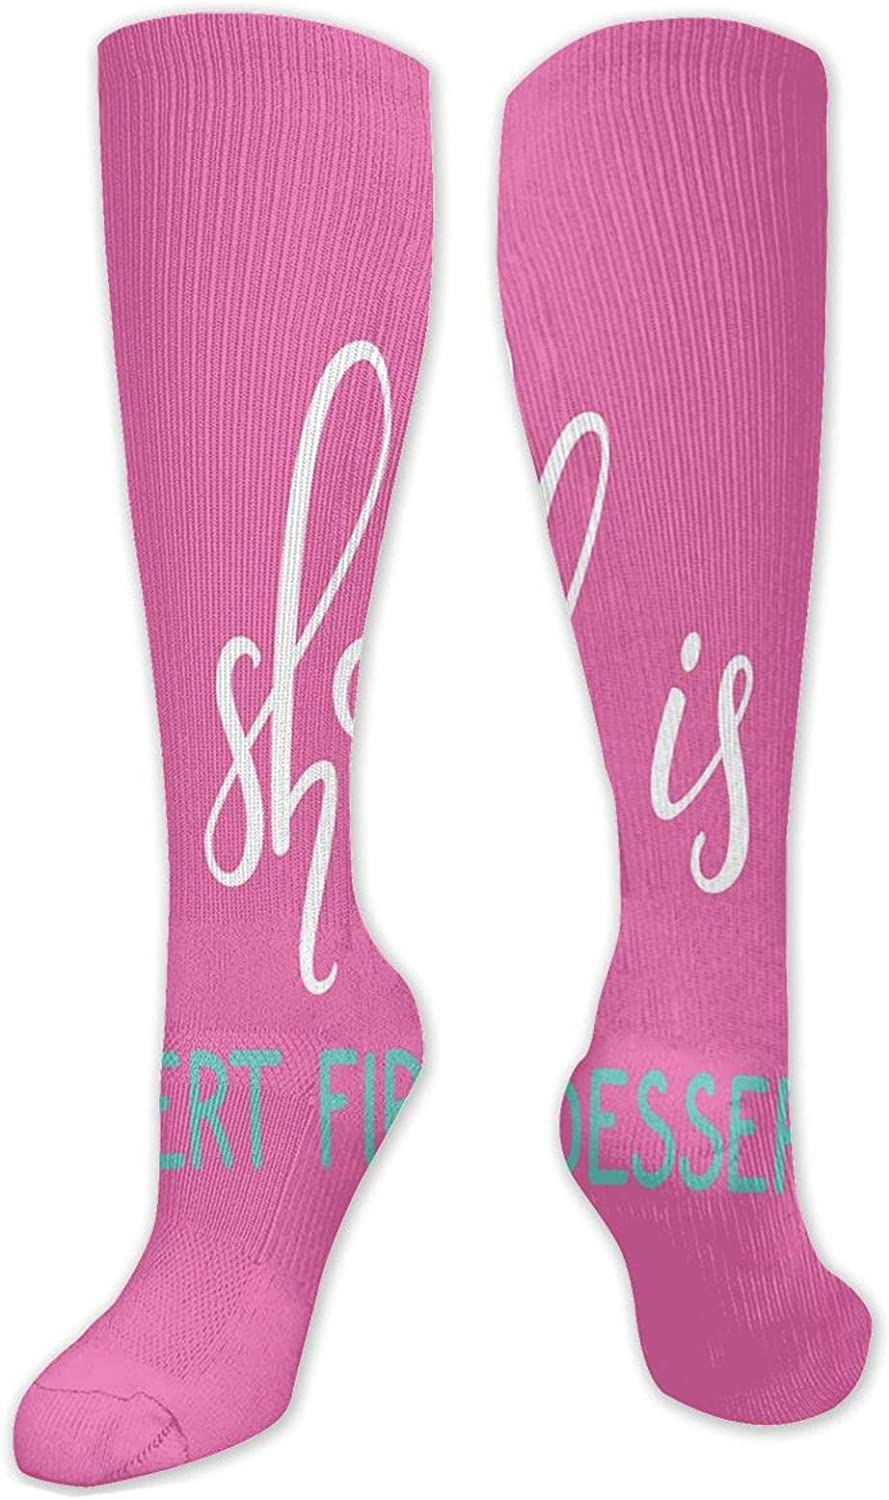 Compression Socks for Max 43% OFF WomenMen Knee High Size(50C trend rank One Sock